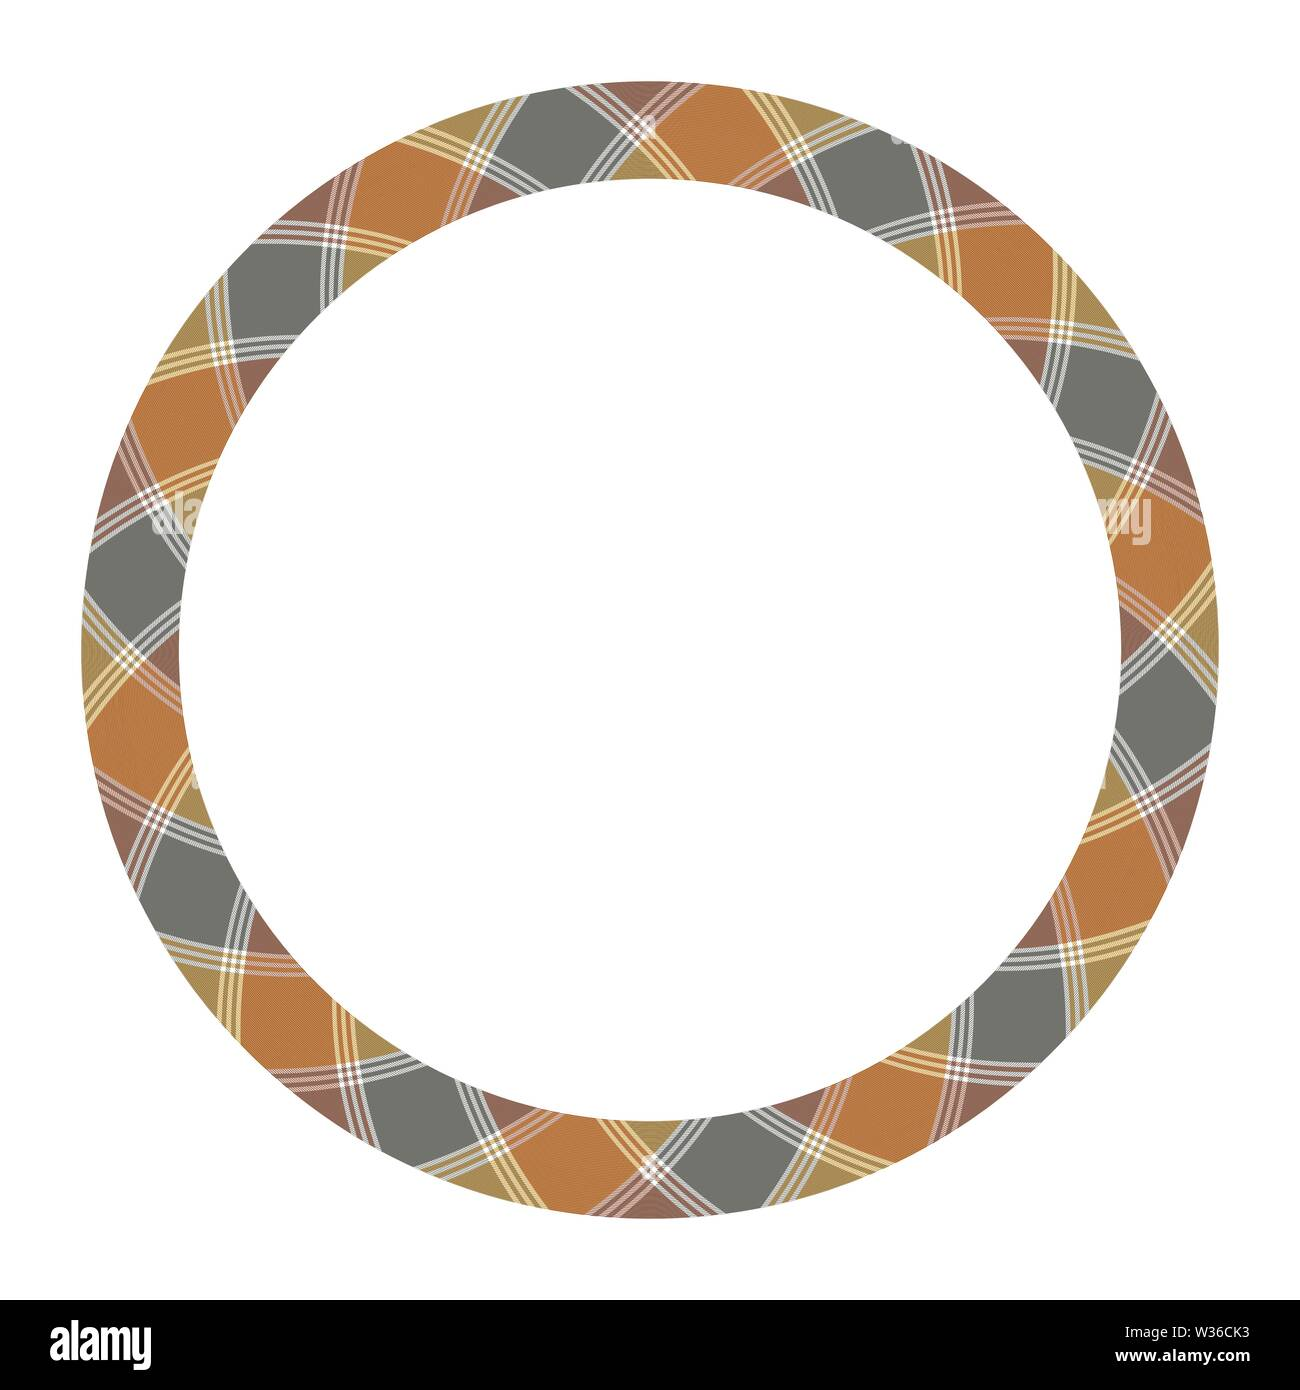 Circle borders and frames vector  Round border pattern